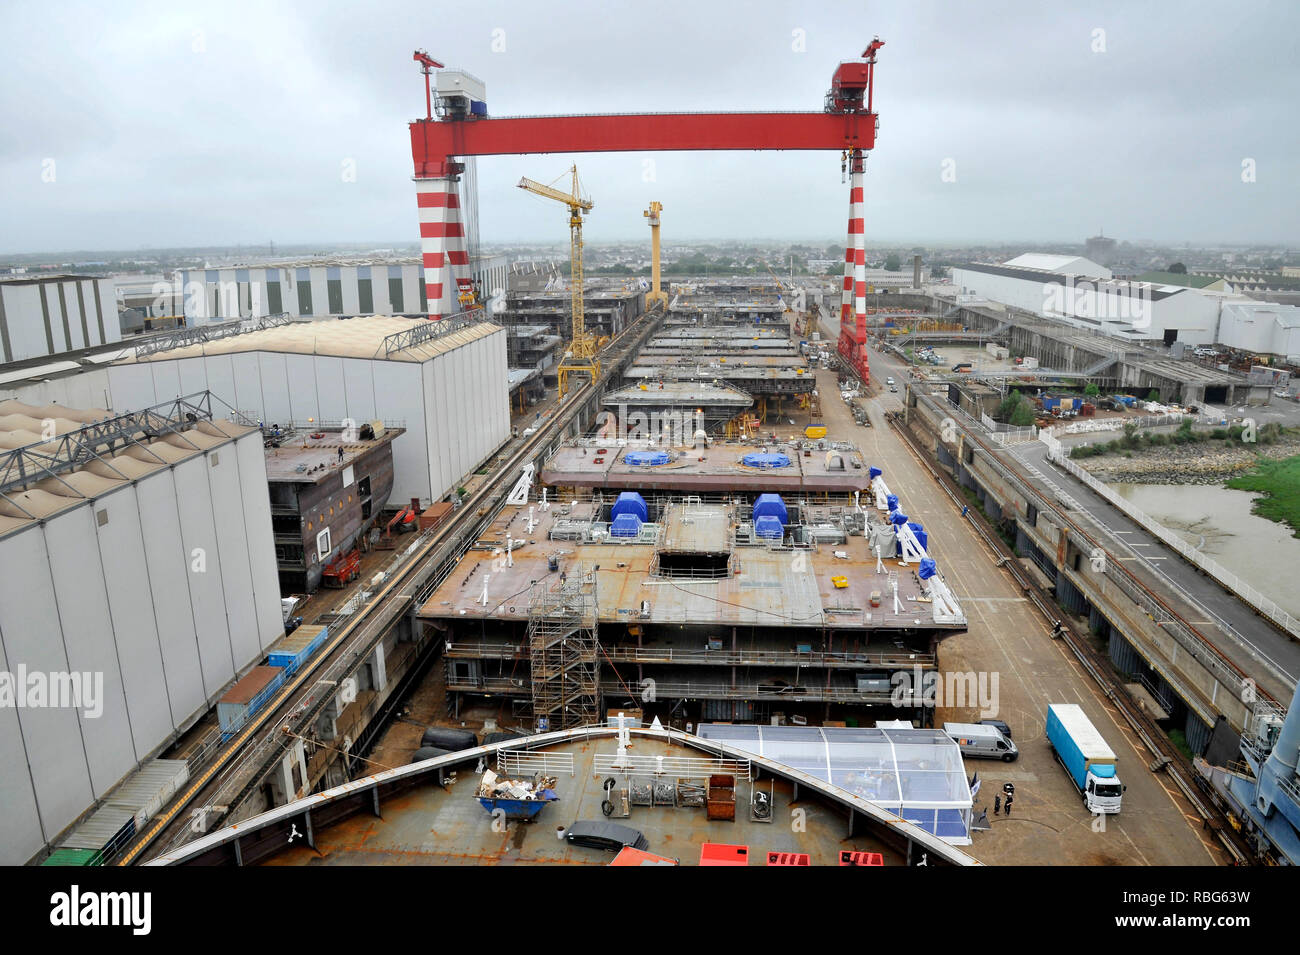 STX shipyards in Saint-Nazaire (north-western France),STX shipyards in Saint-Nazaire on 2018/06/14: overview with the bow of the MSC Bellissima cruise - Stock Image